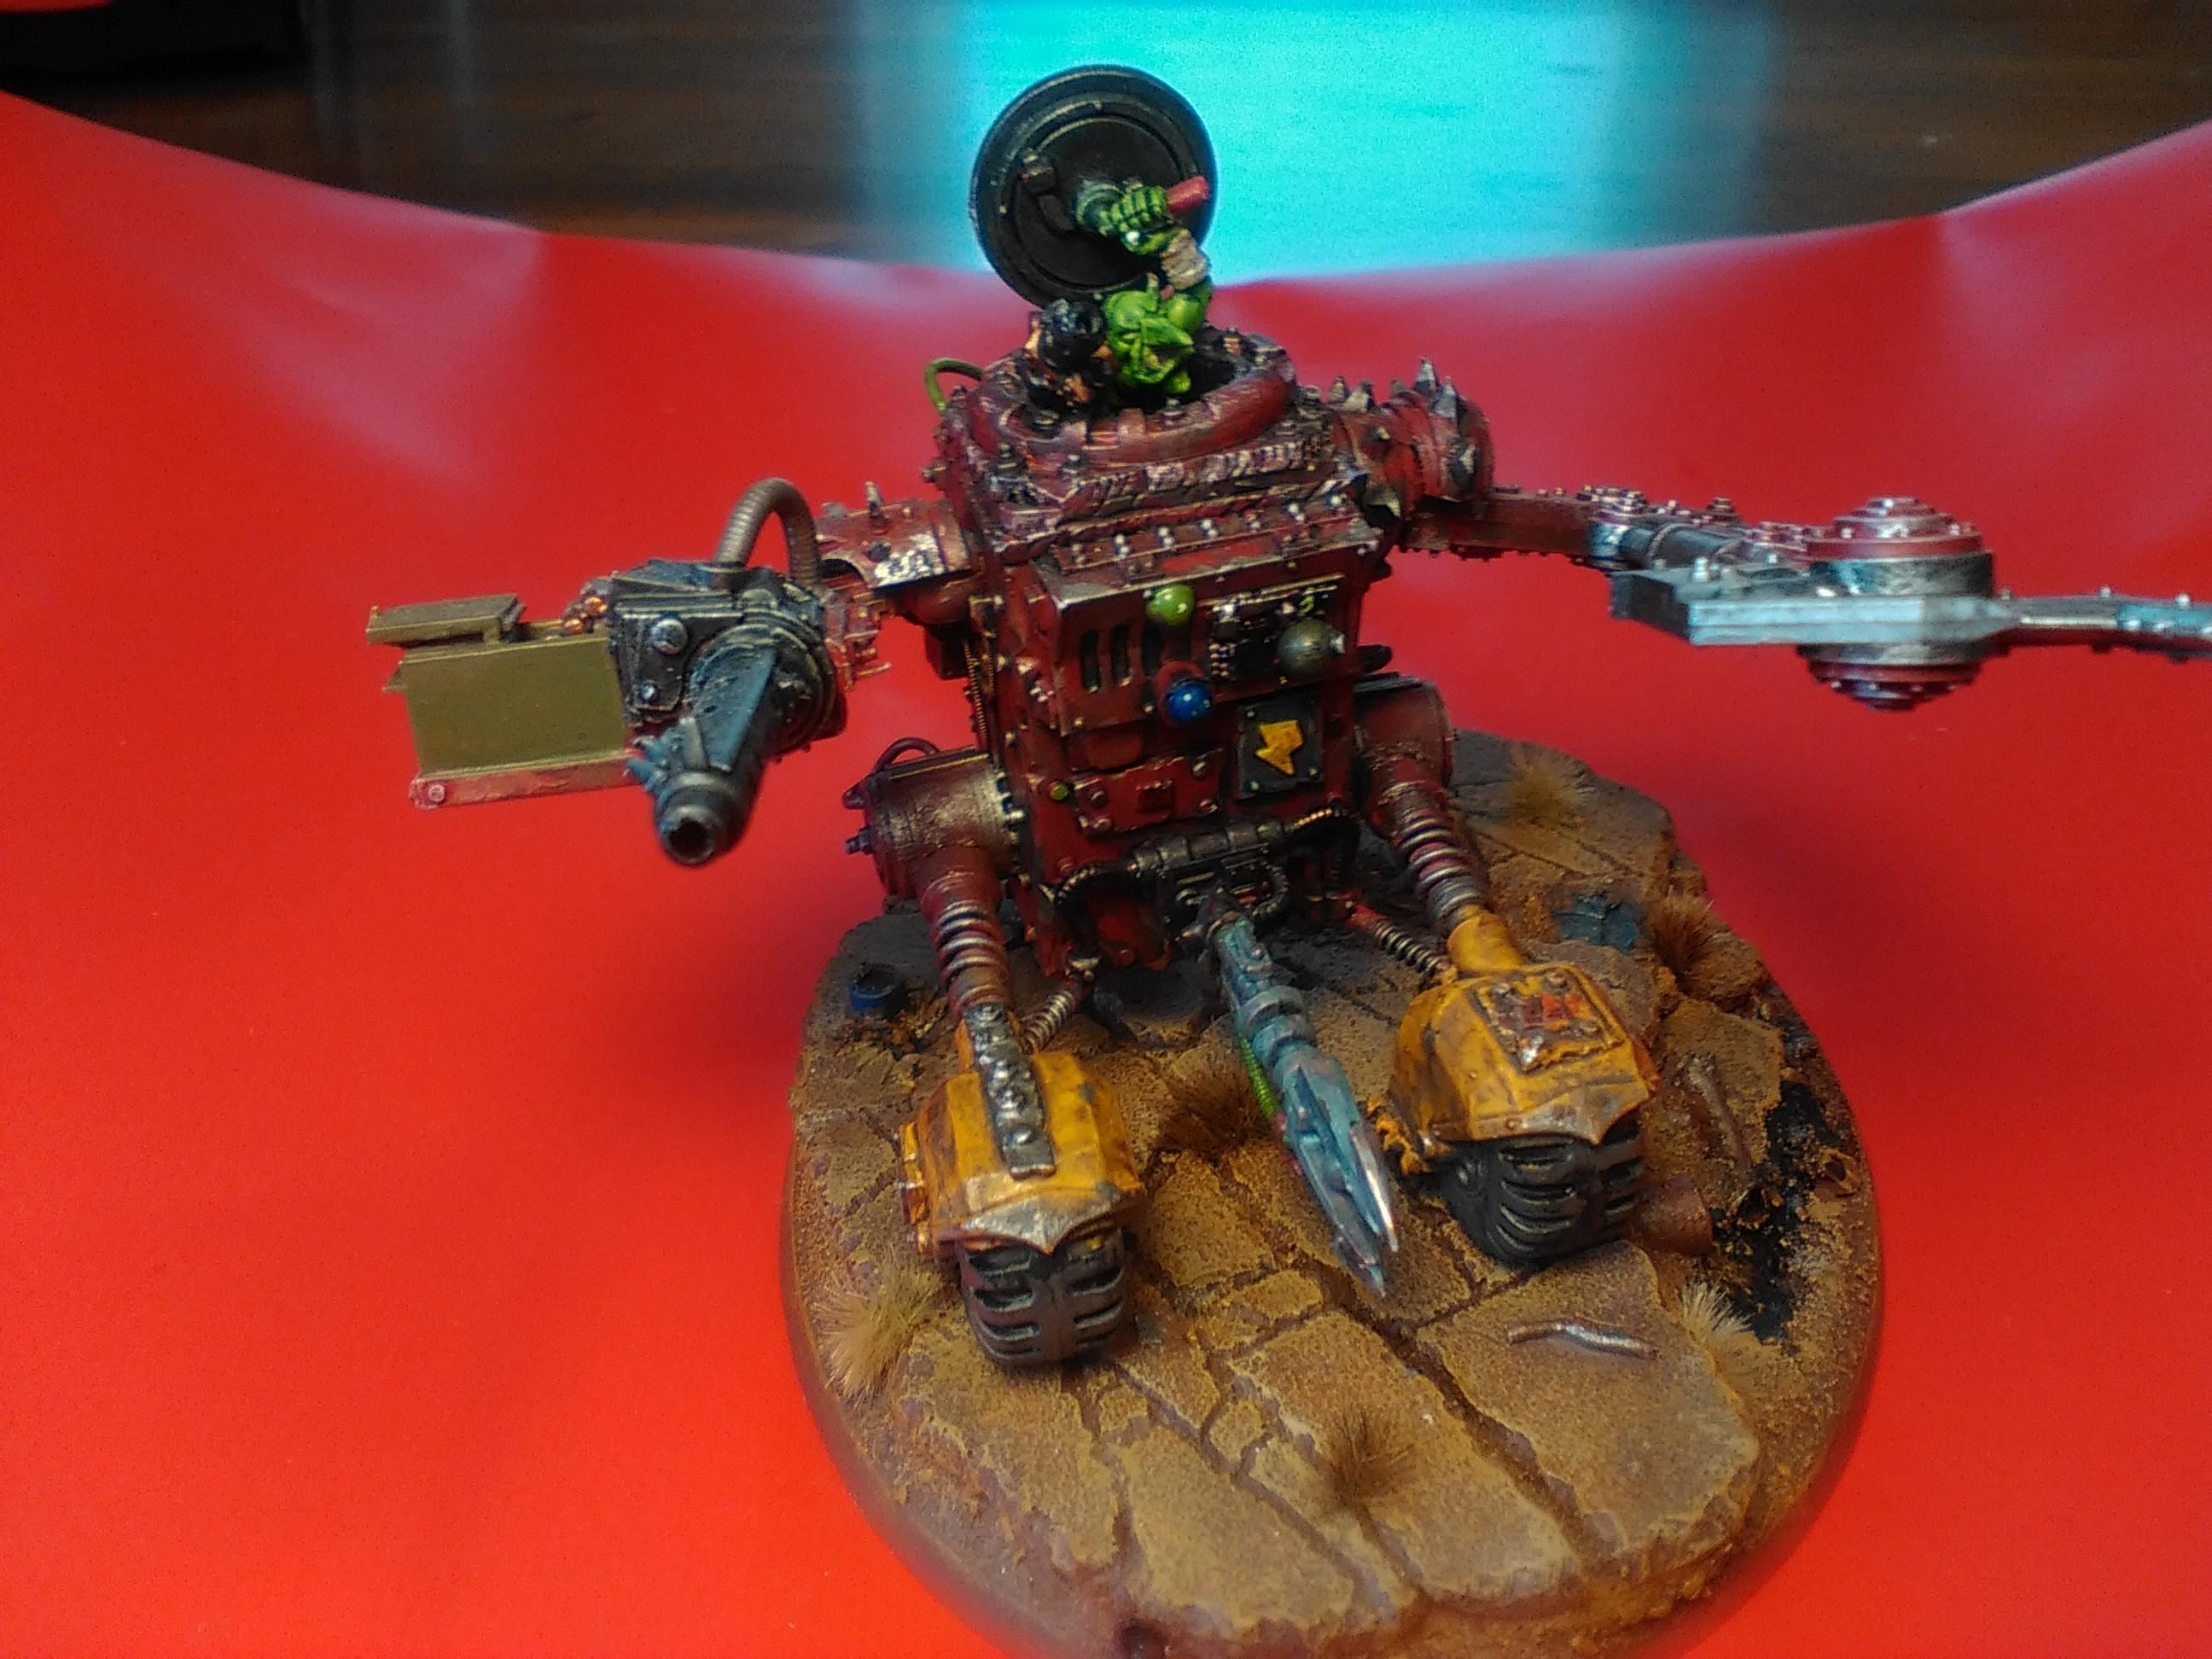 Grot Conversion, Grots, Killa Kan, Kitbash, Ork Conversions, Ork Coustom Made Vehicles, Orks, Scratch Build, Warhammer 40,000